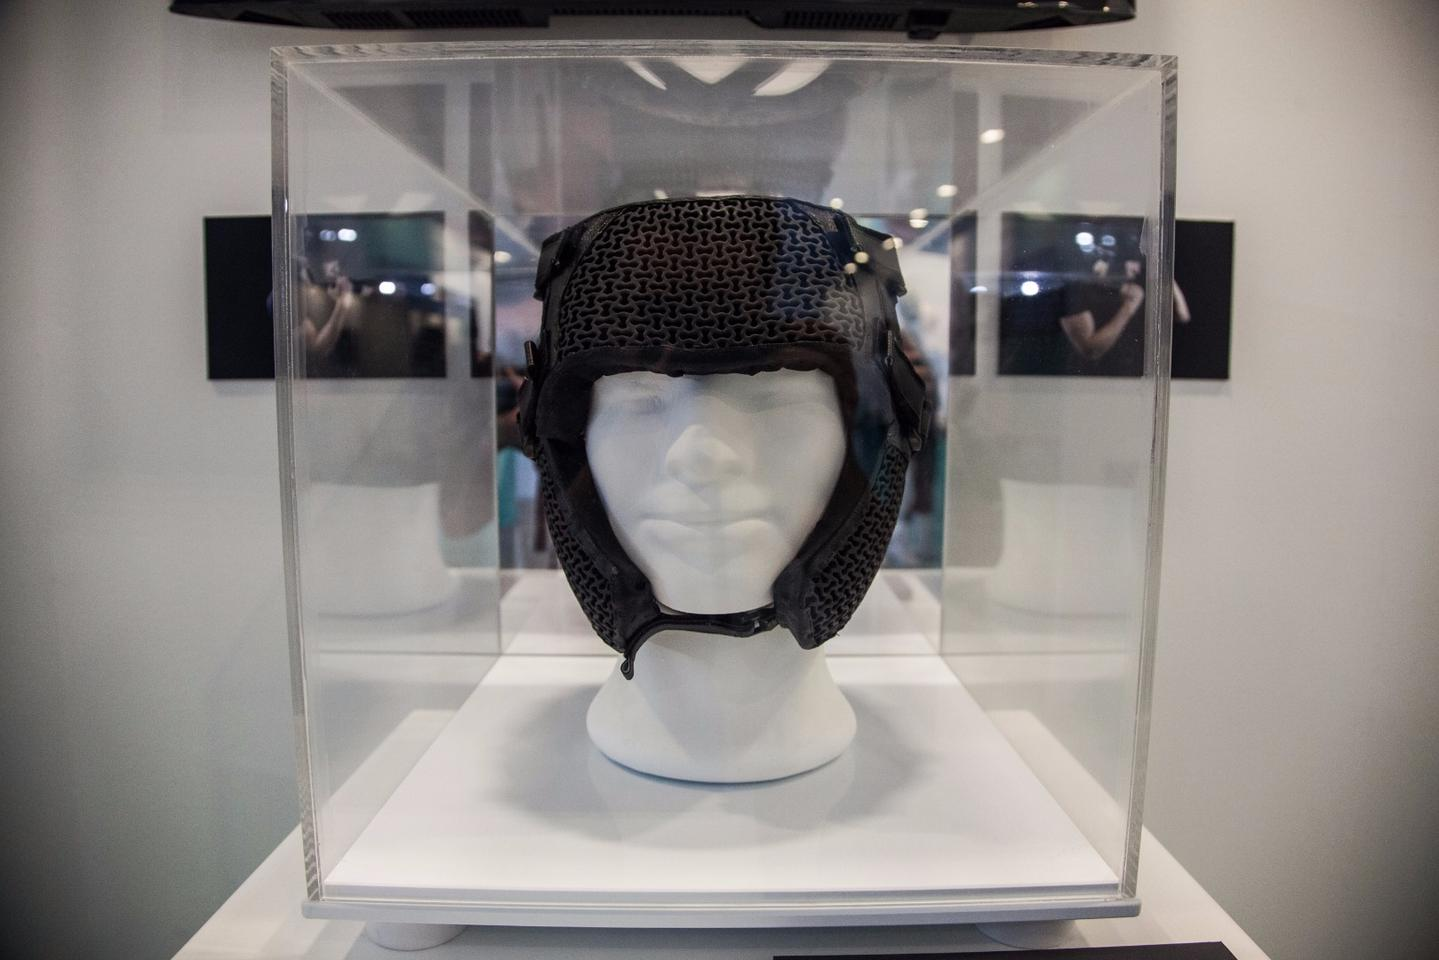 Global Grad Show: Headgear with responsive material that redirects impacts to better protect agains concussions. By He Chang Teo, from National University of Singapore